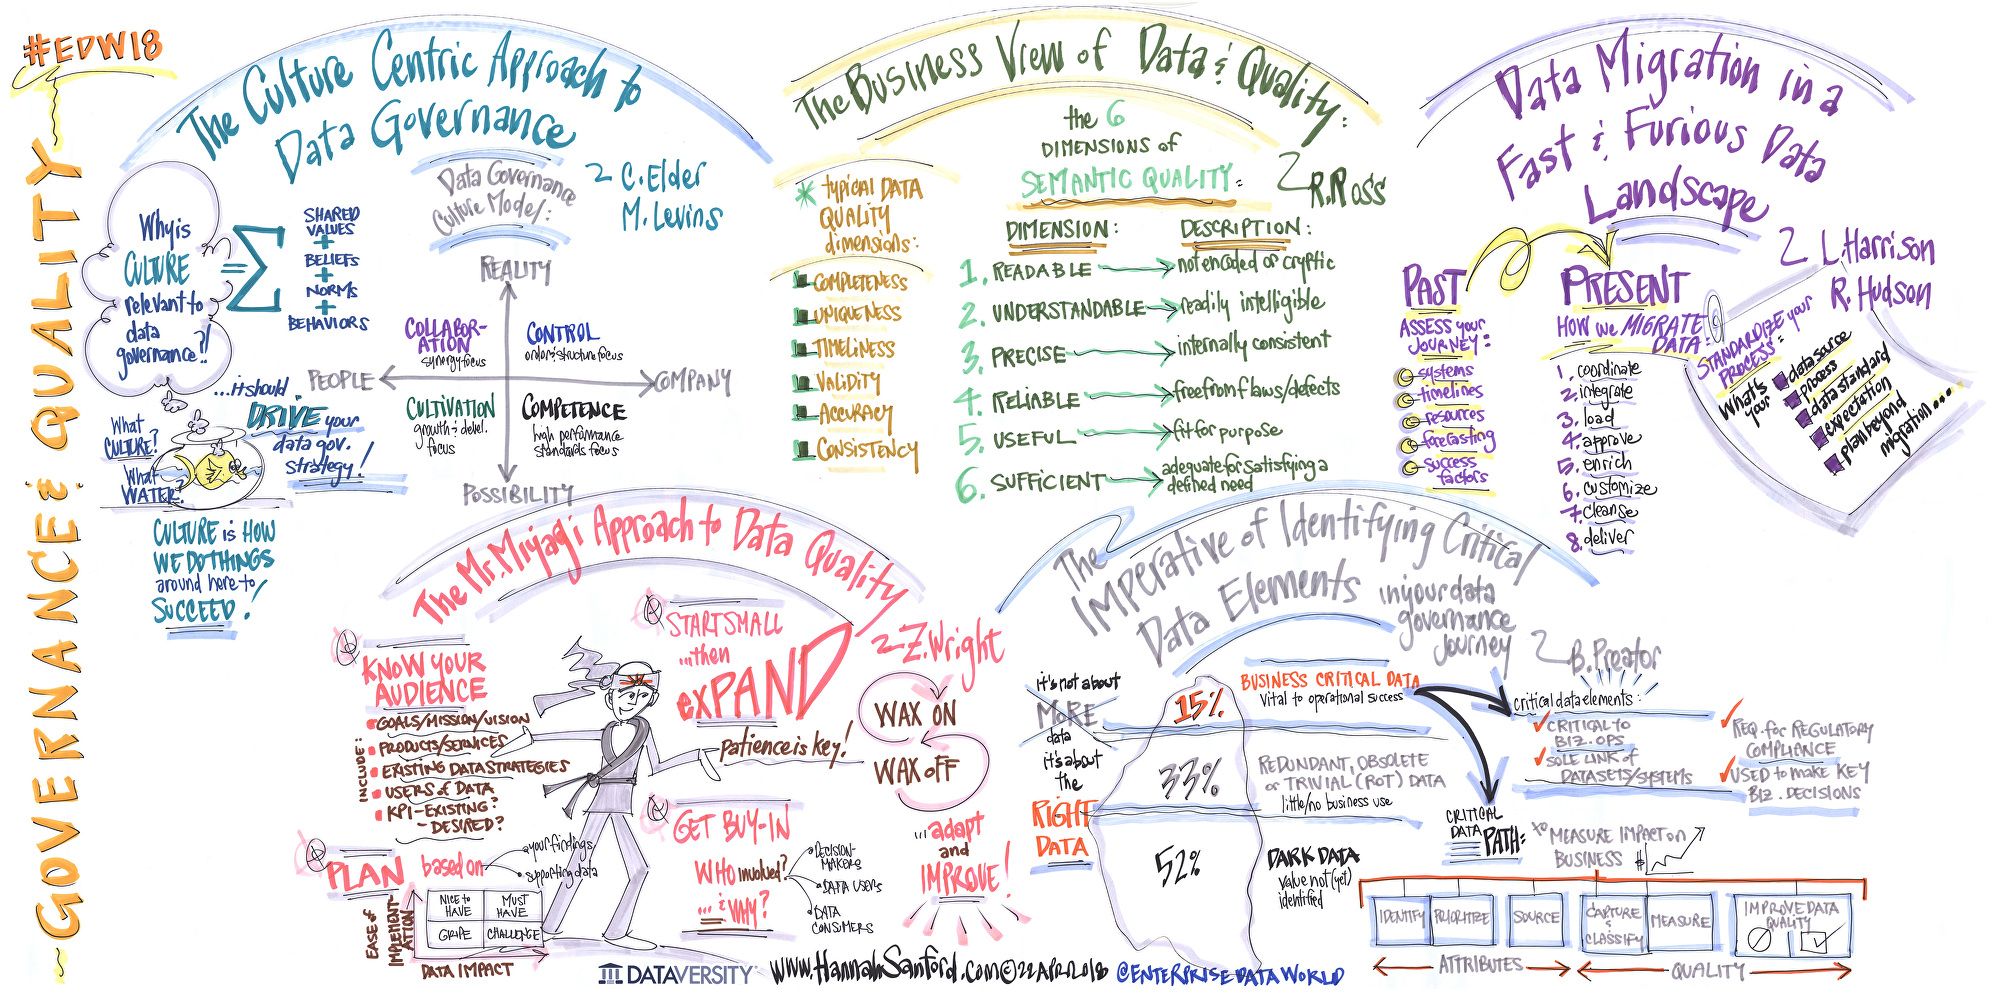 EDW18 EXECUTIVE SUMMARY MURAL: DATA GOVERNANCE AND DATA QUALITY